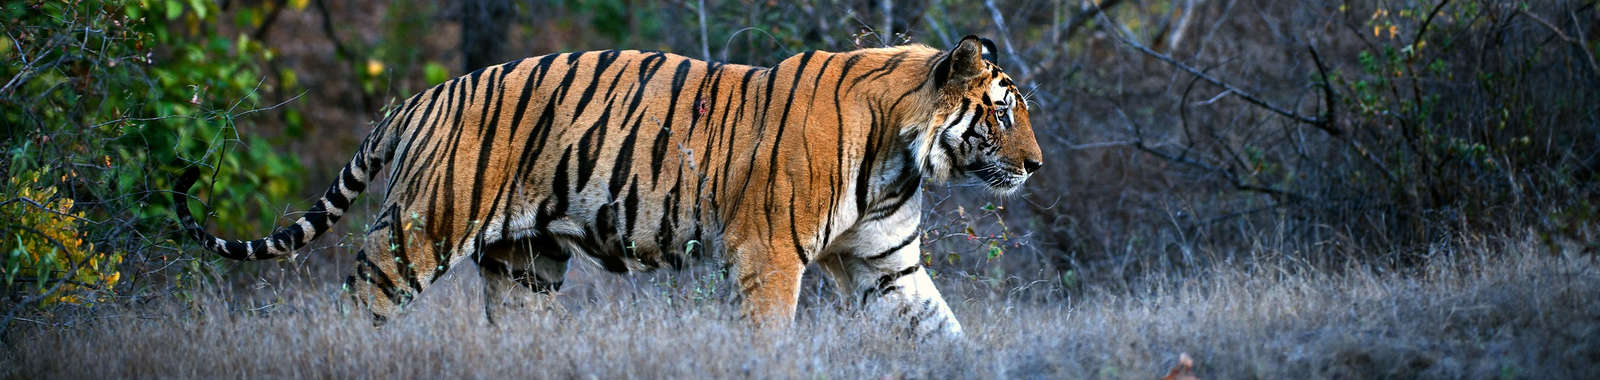 Seek out Royal Bengal tigers on a luxury tailor-made holiday to north India